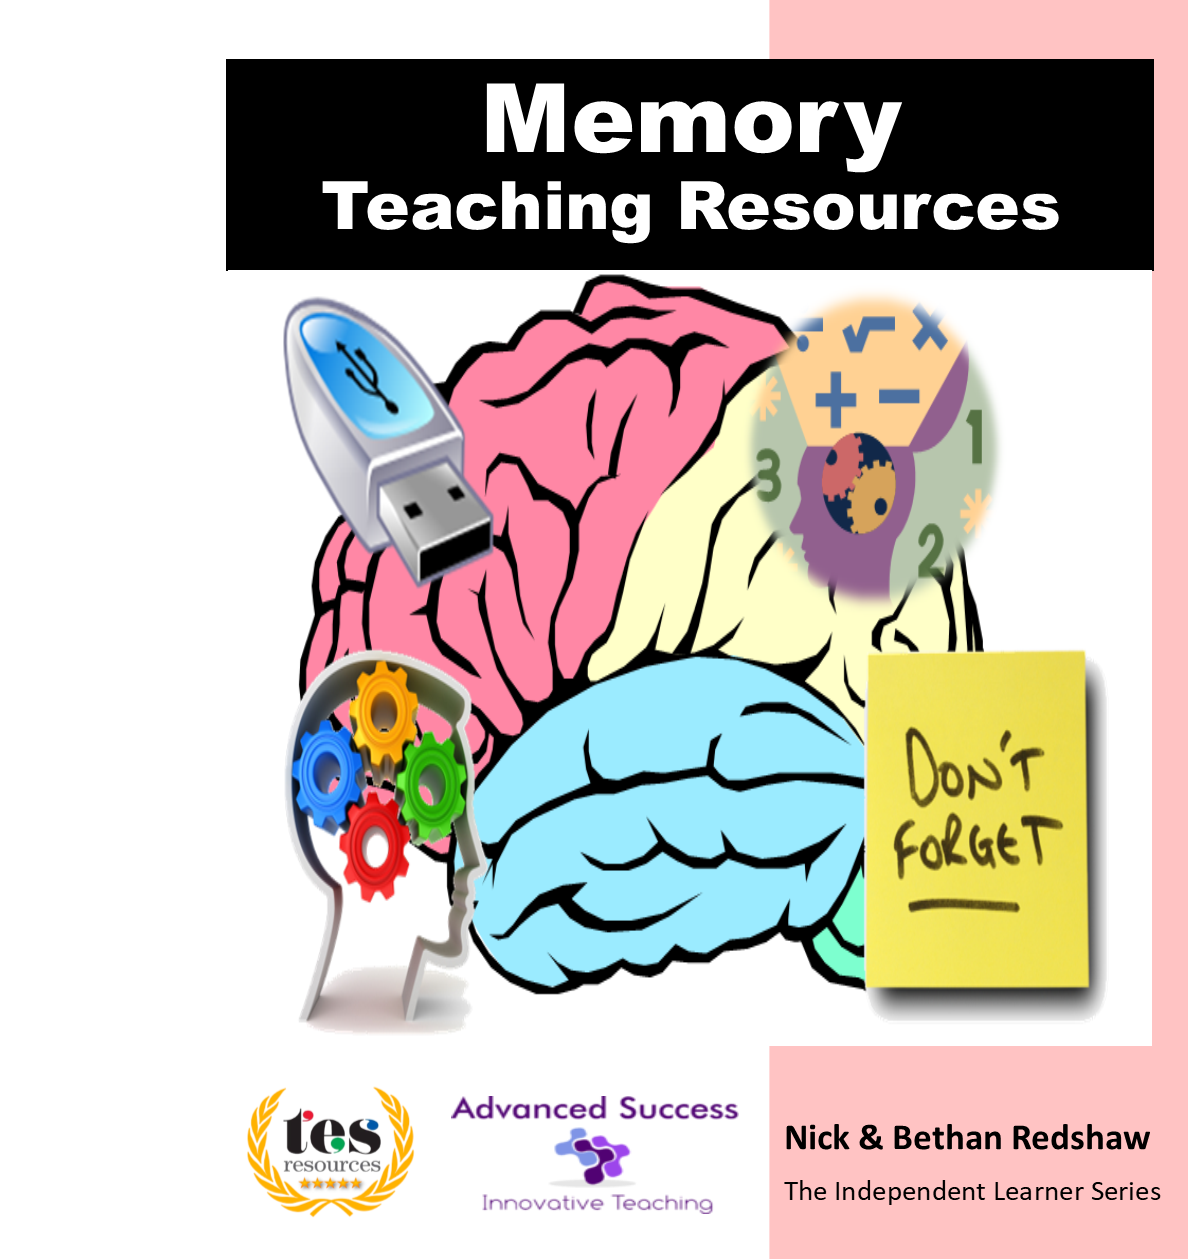 SPECIAL OFFER (45% Off) - MEMORY Workbook, Lesson Plans and PowerPoint's Bundle